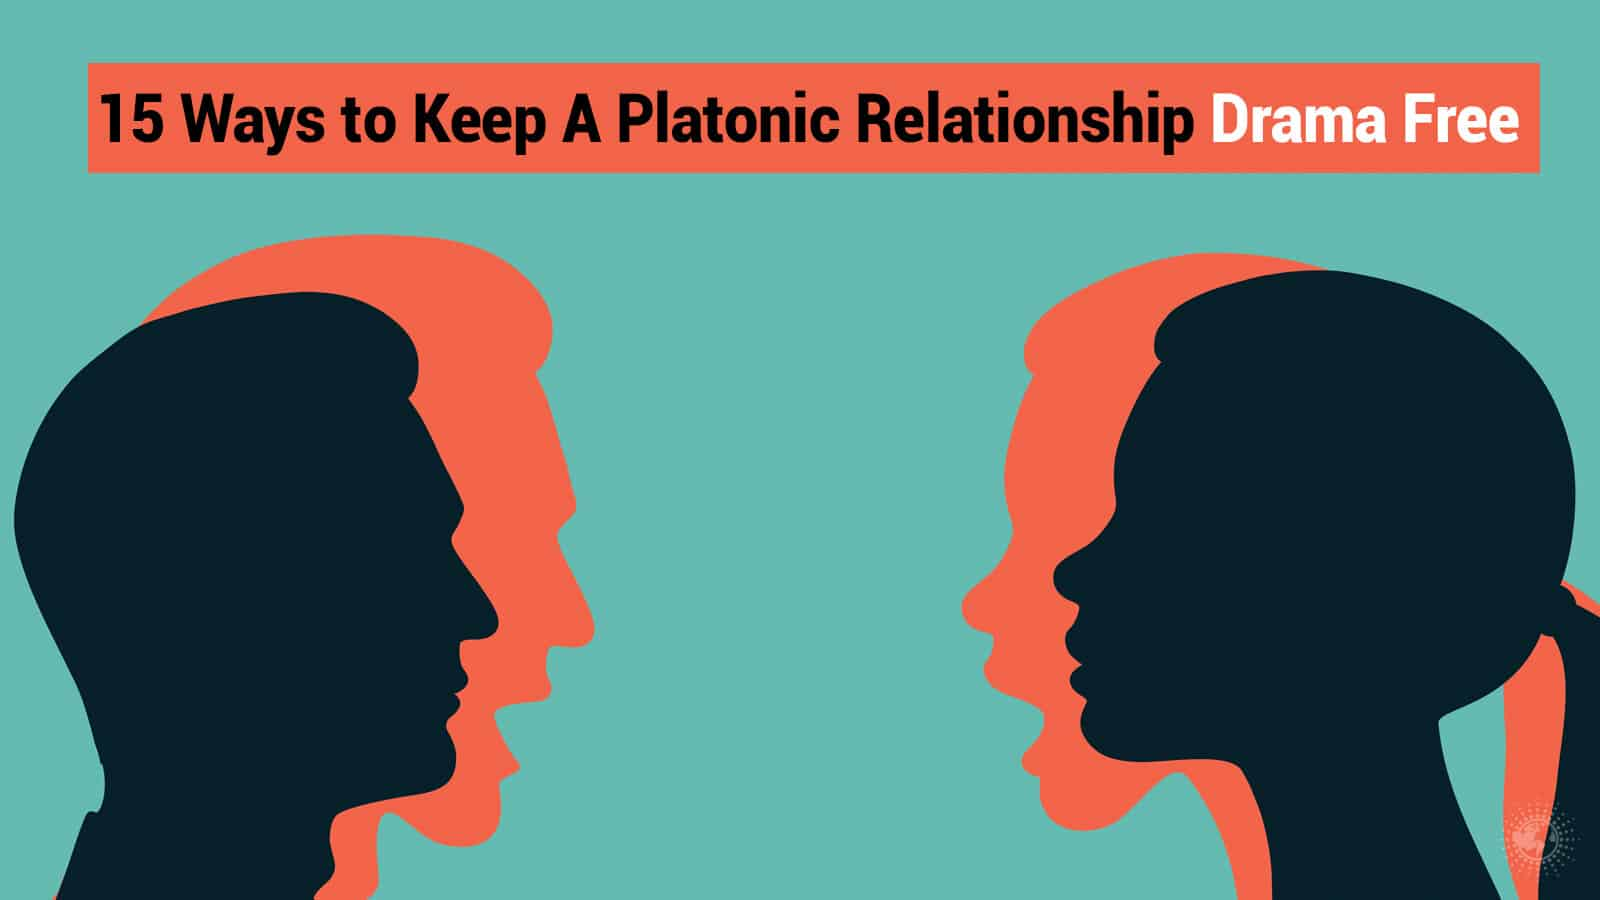 Platonically in love